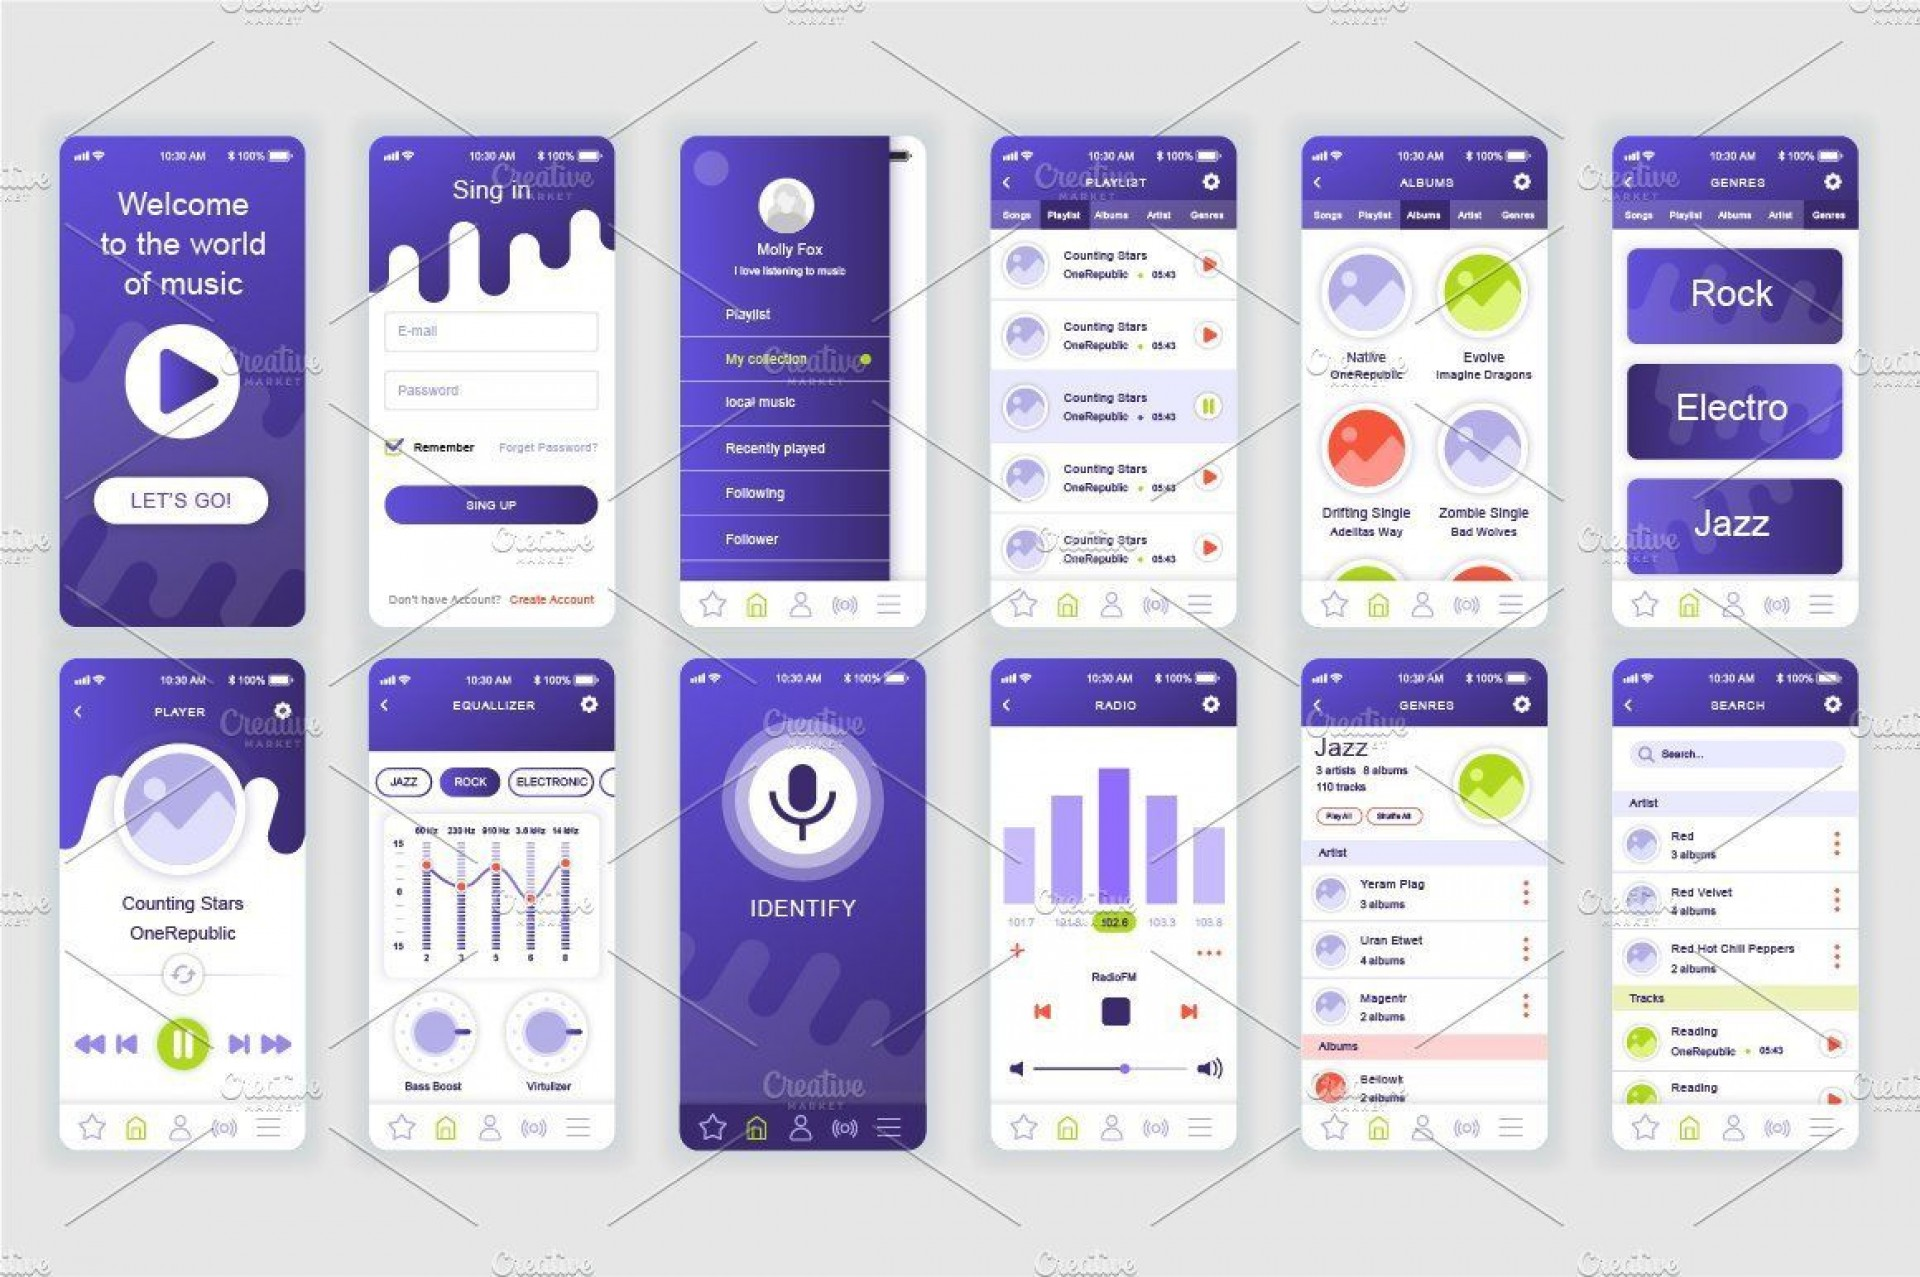 003 Unique Mobile App Design Template Inspiration  Templates Ui Free Online Android Psd1920